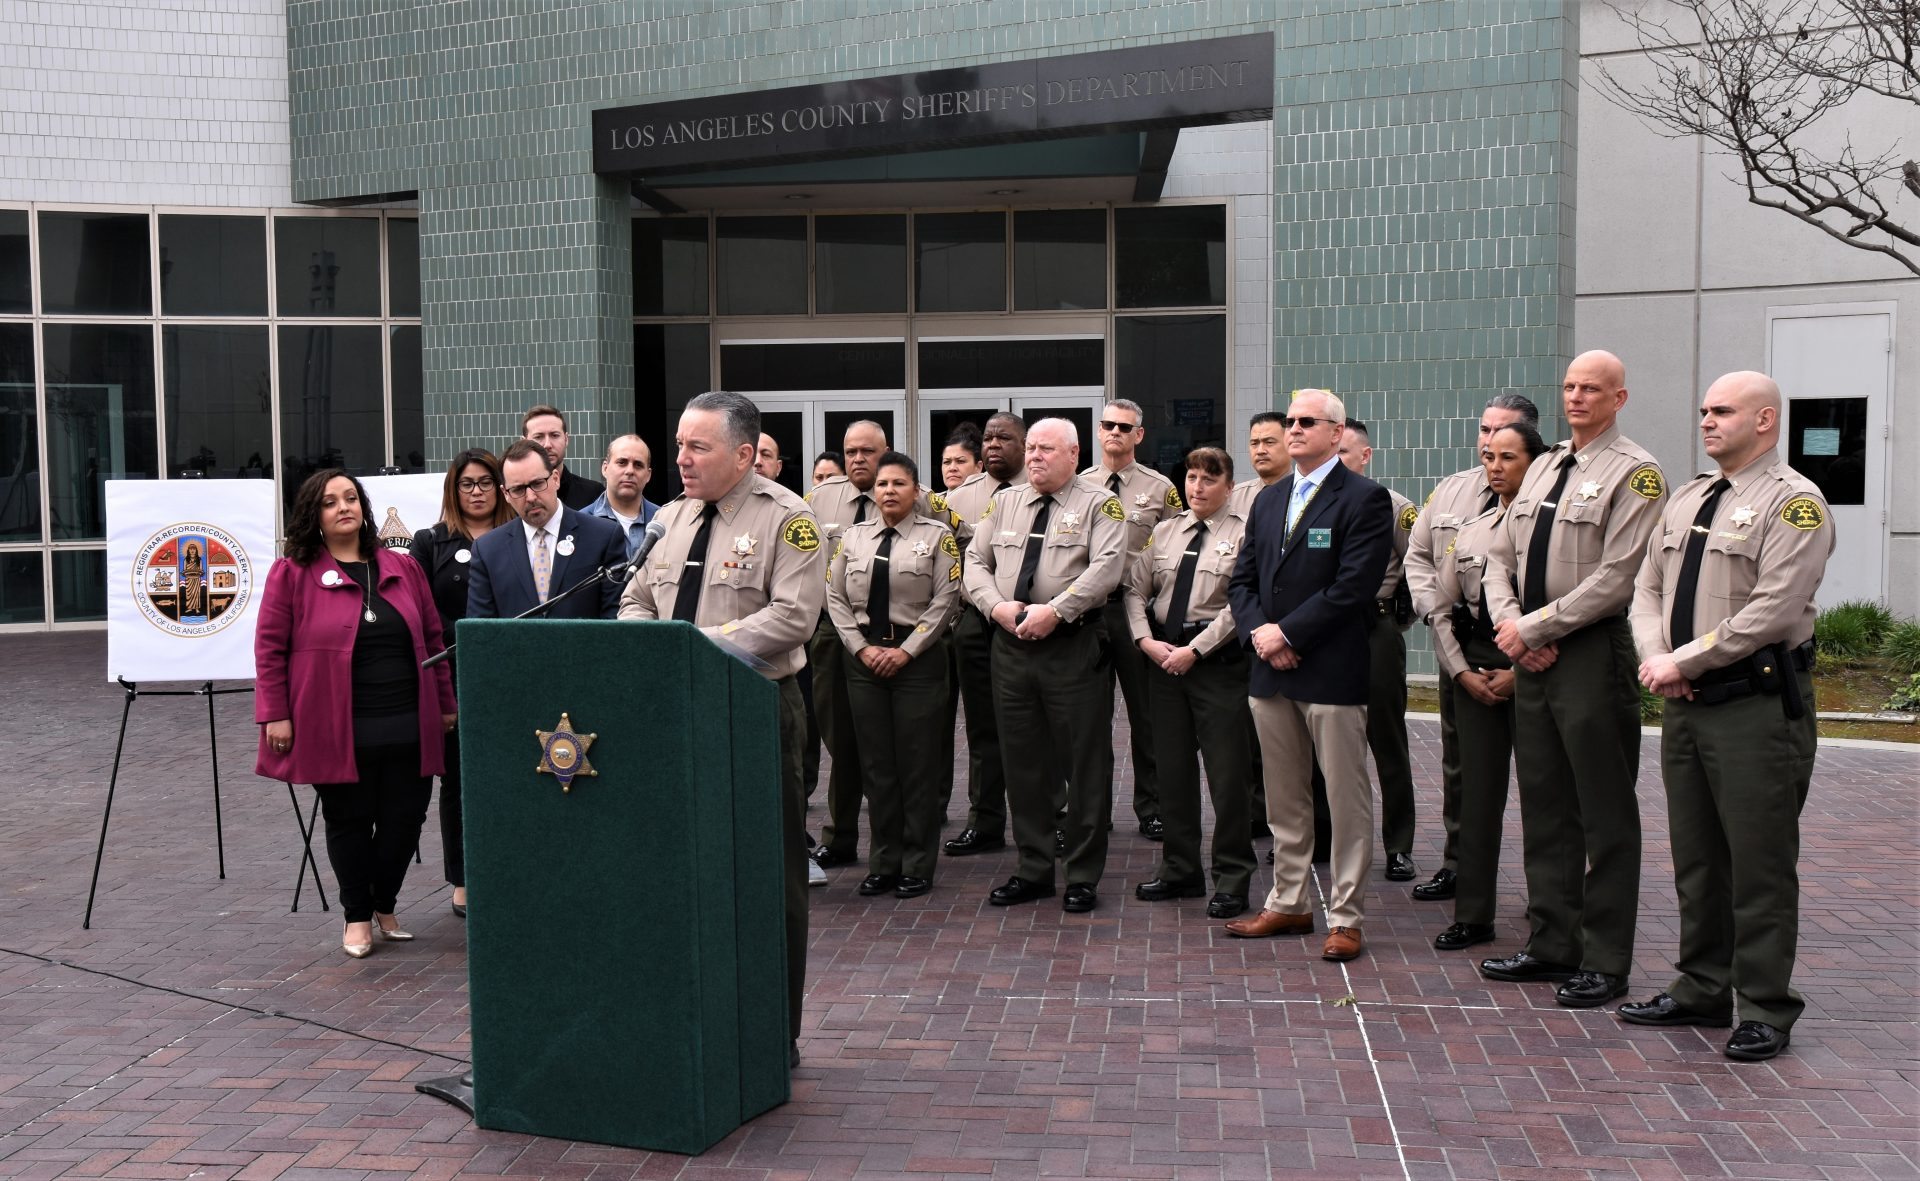 Eligible Inmates in LA County Jails to be Able to Vote Under New Program